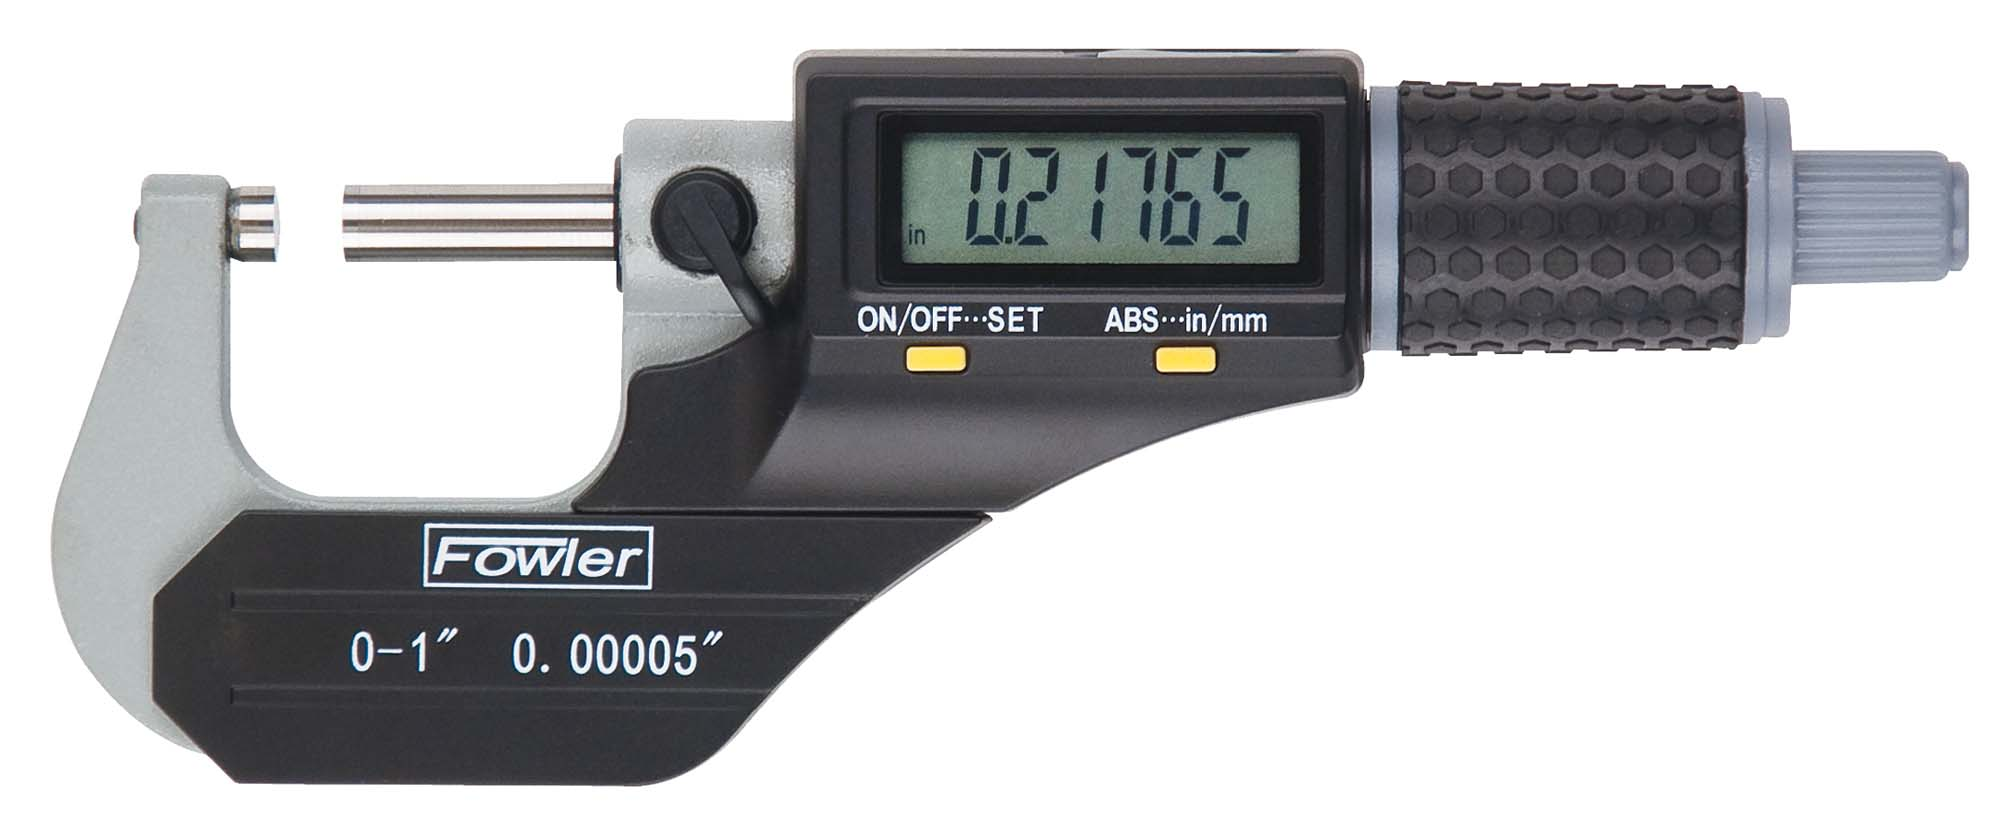 "Fowler 54-870-003 Xtra-Value II 2-3"" Electronic Micrometer"